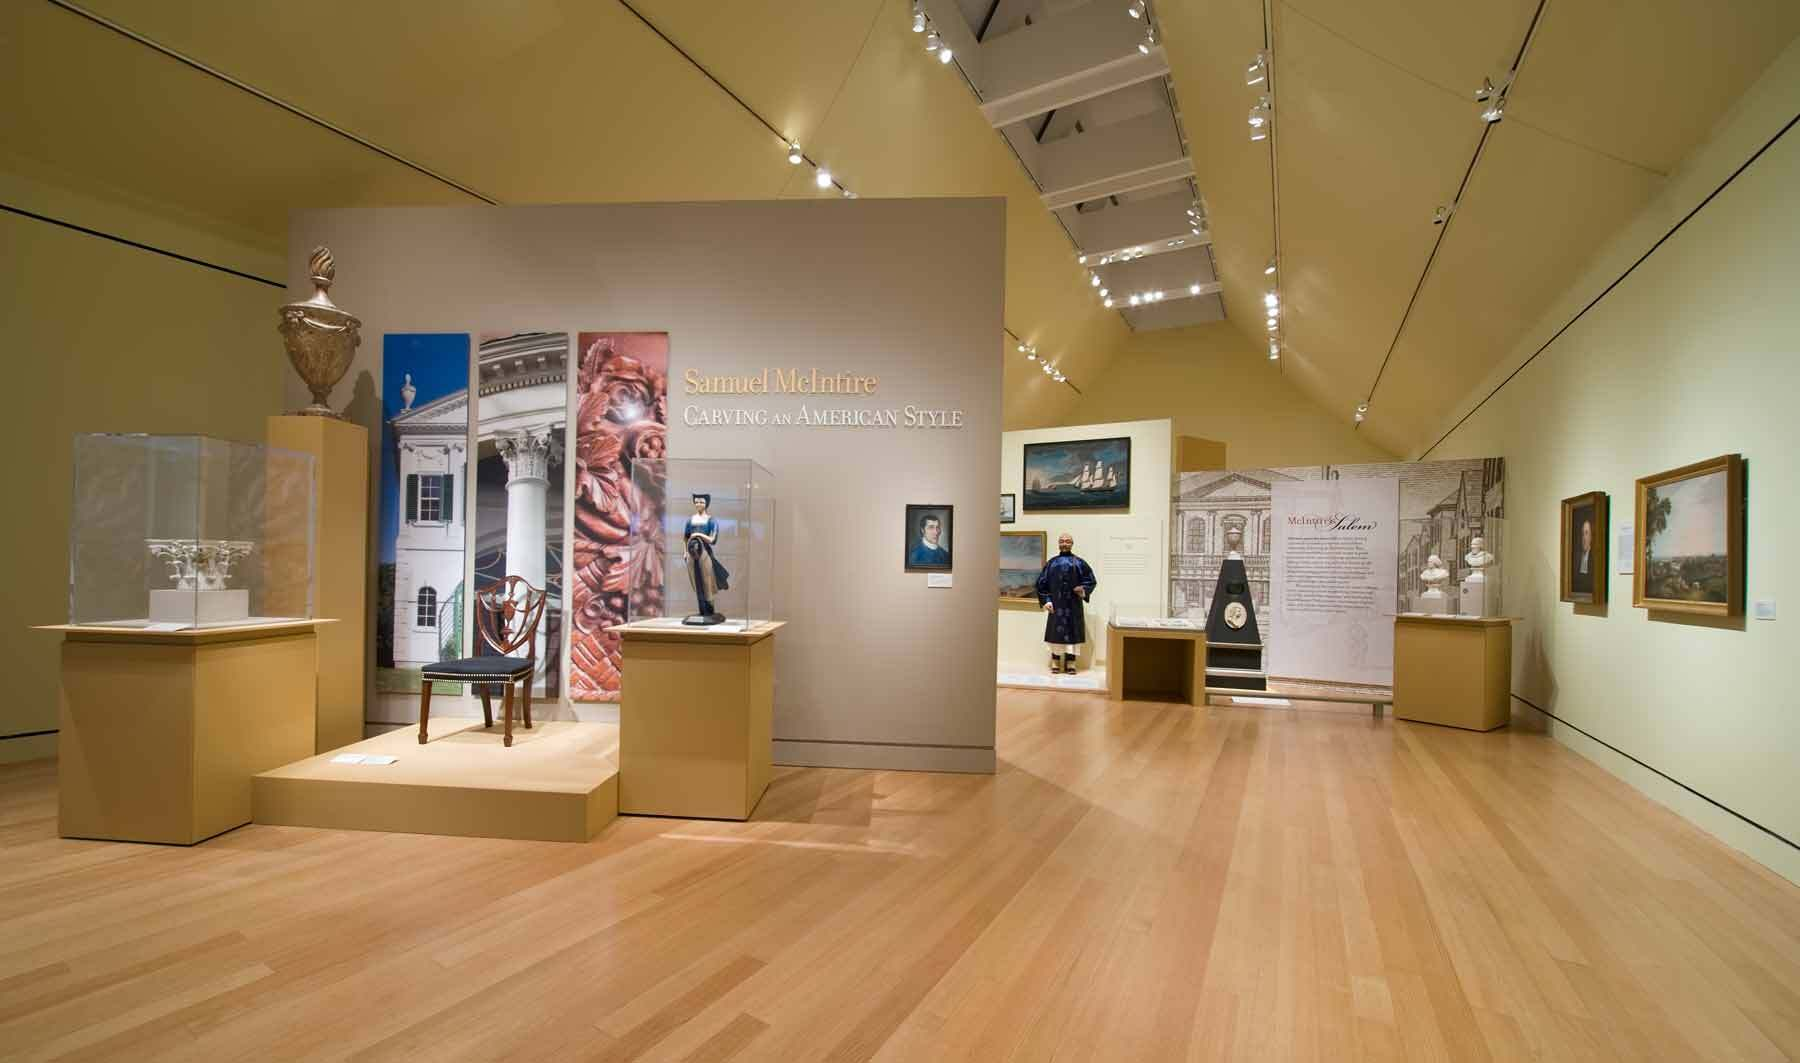 First major exhibition of Samuel McIntire's carving.